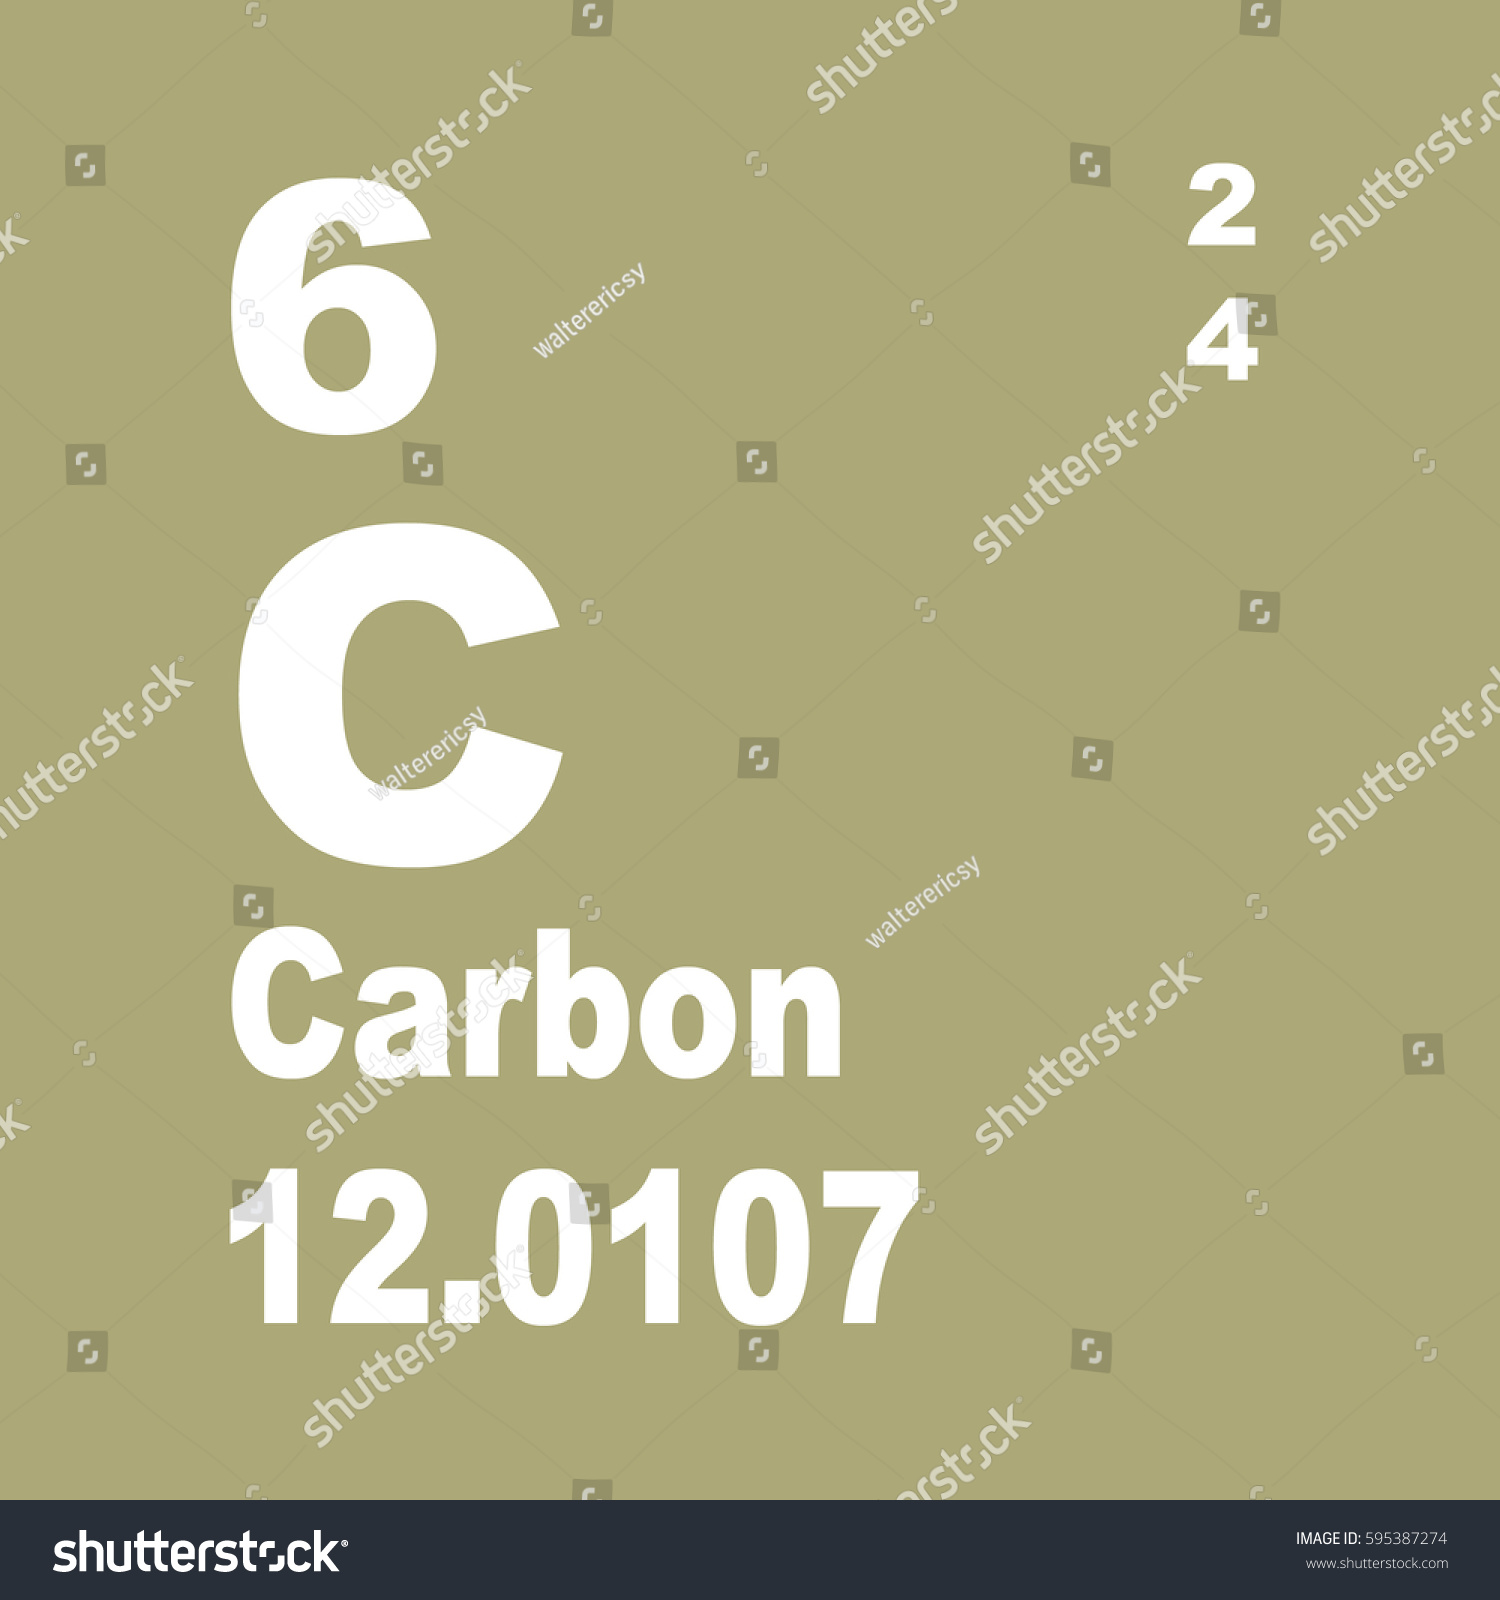 Carbon periodic table of elements gallery periodic table images carbon periodic table elements stock illustration 595387274 carbon periodic table of elements gamestrikefo gallery gamestrikefo Gallery